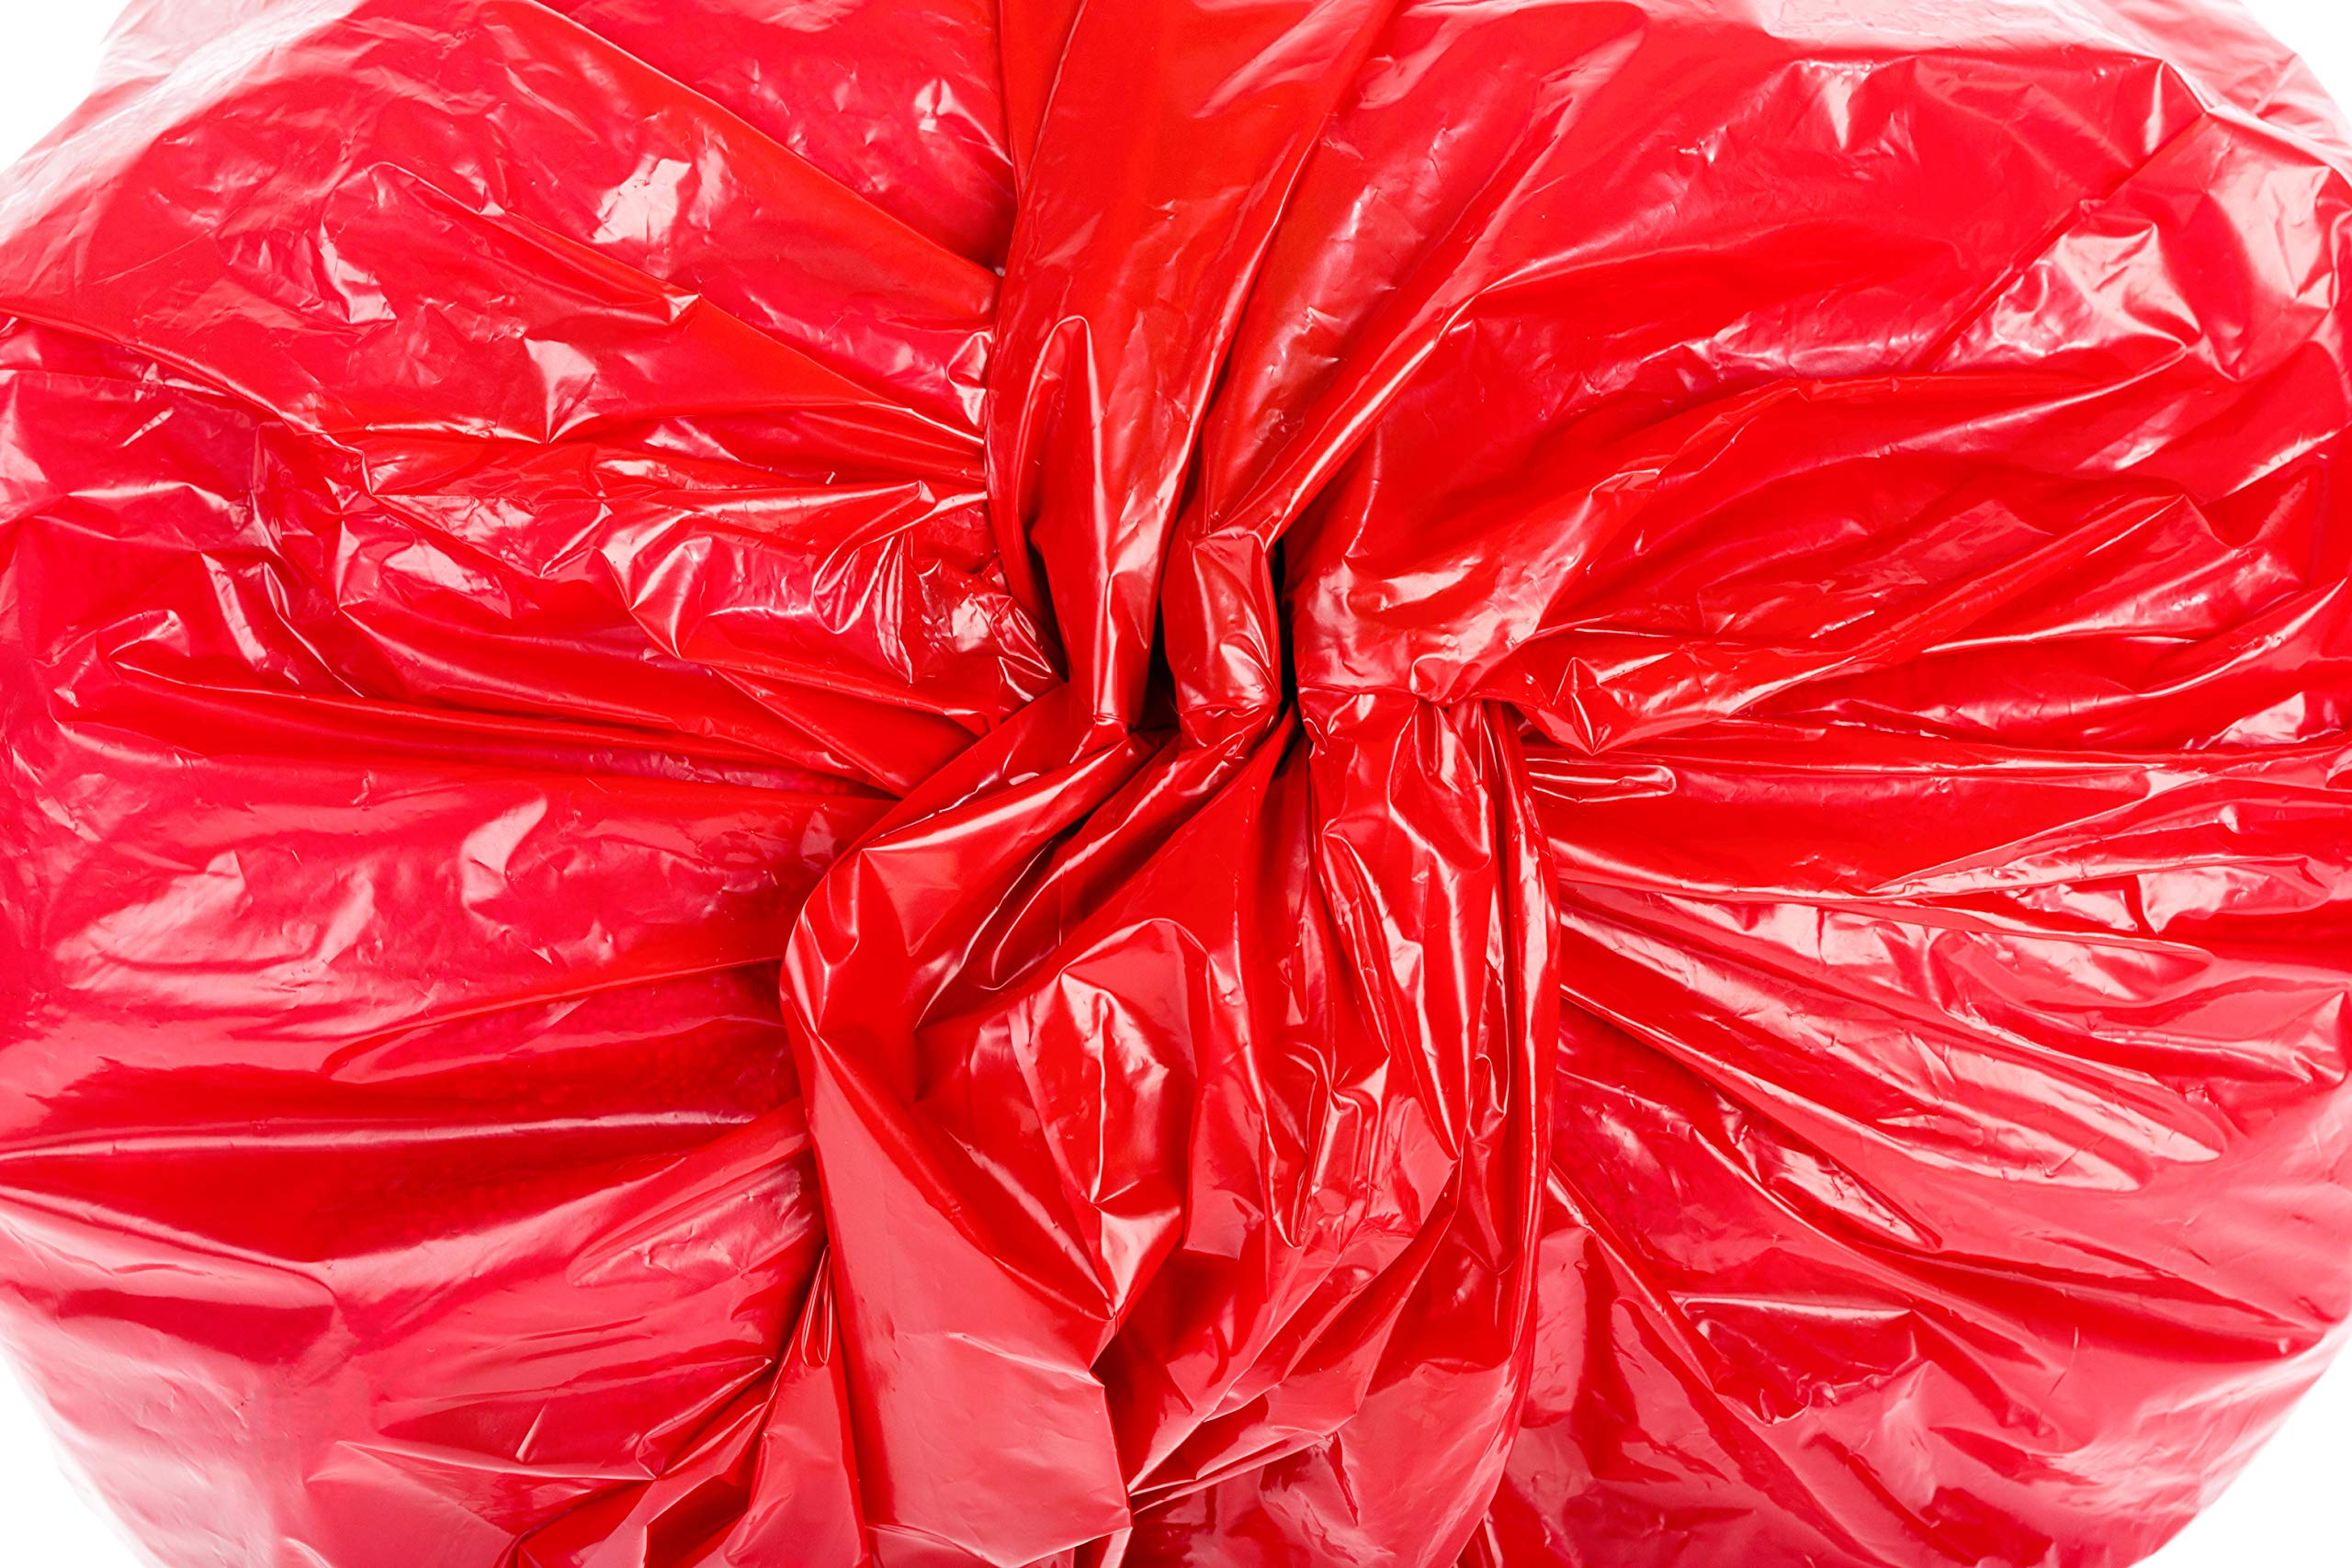 FDA Approved Biohazard Safety Bags (25 Gallon) (50 Bags) by OakRidge Products (Image #2)